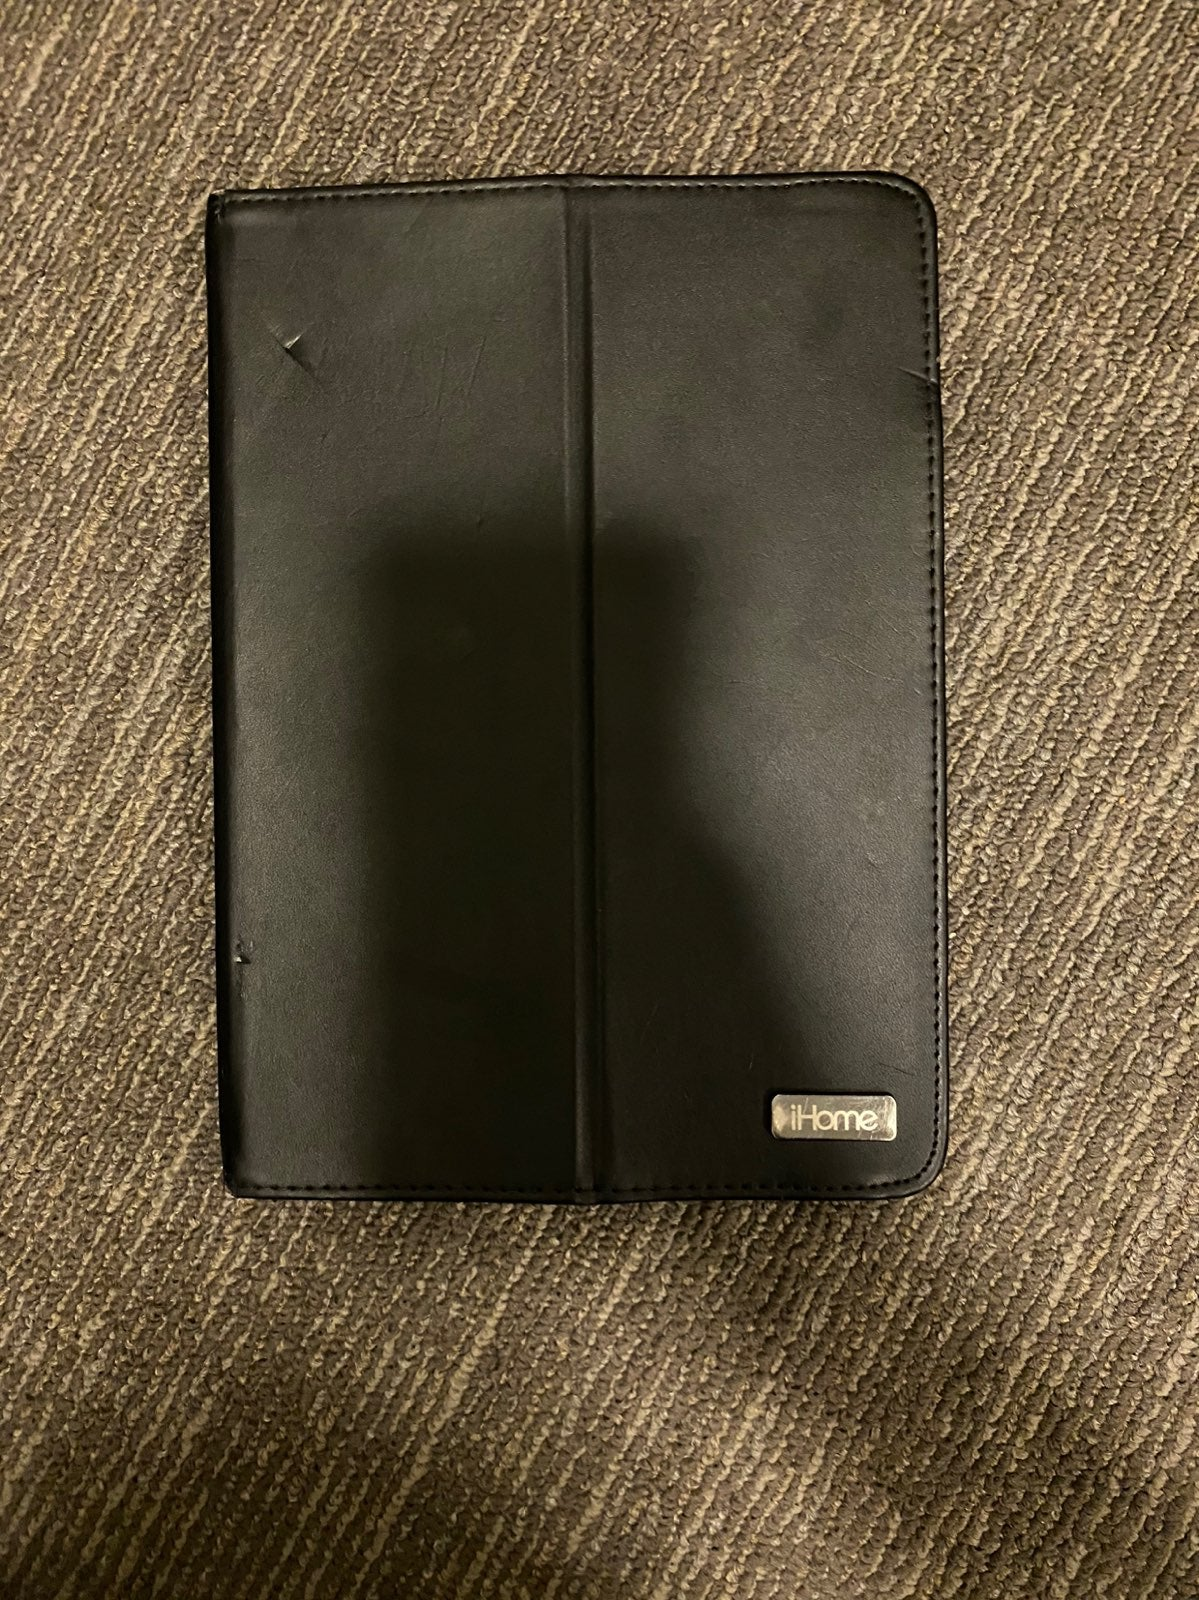 iPad 9.7 inch iHome Tablet Case/Cover